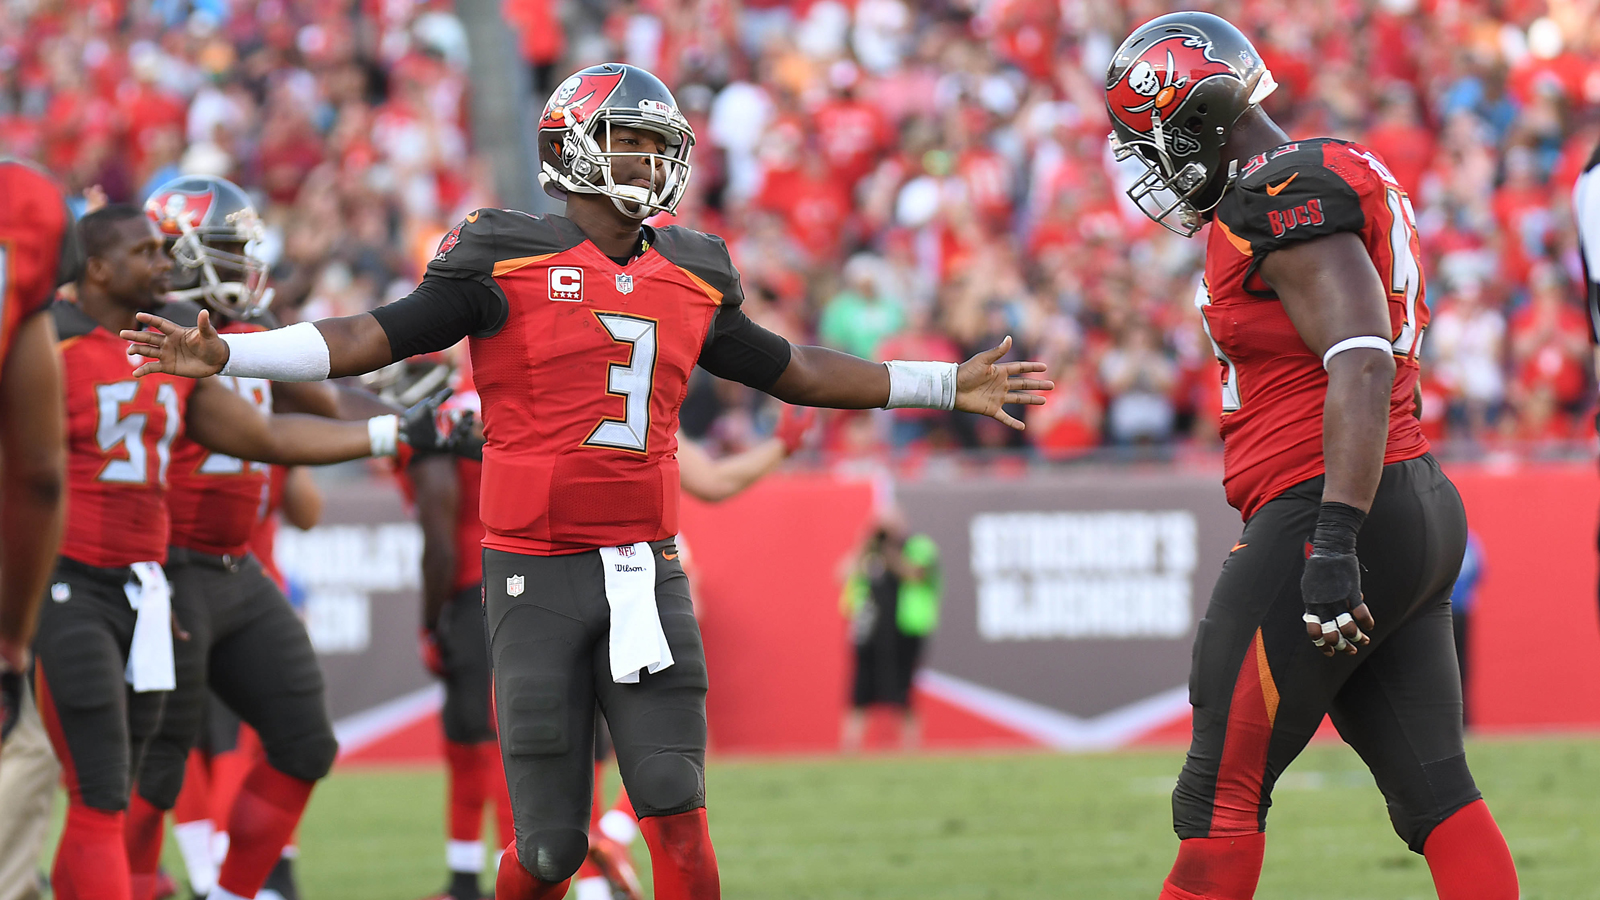 After winning season, Buccaneers looking for progress from young roster